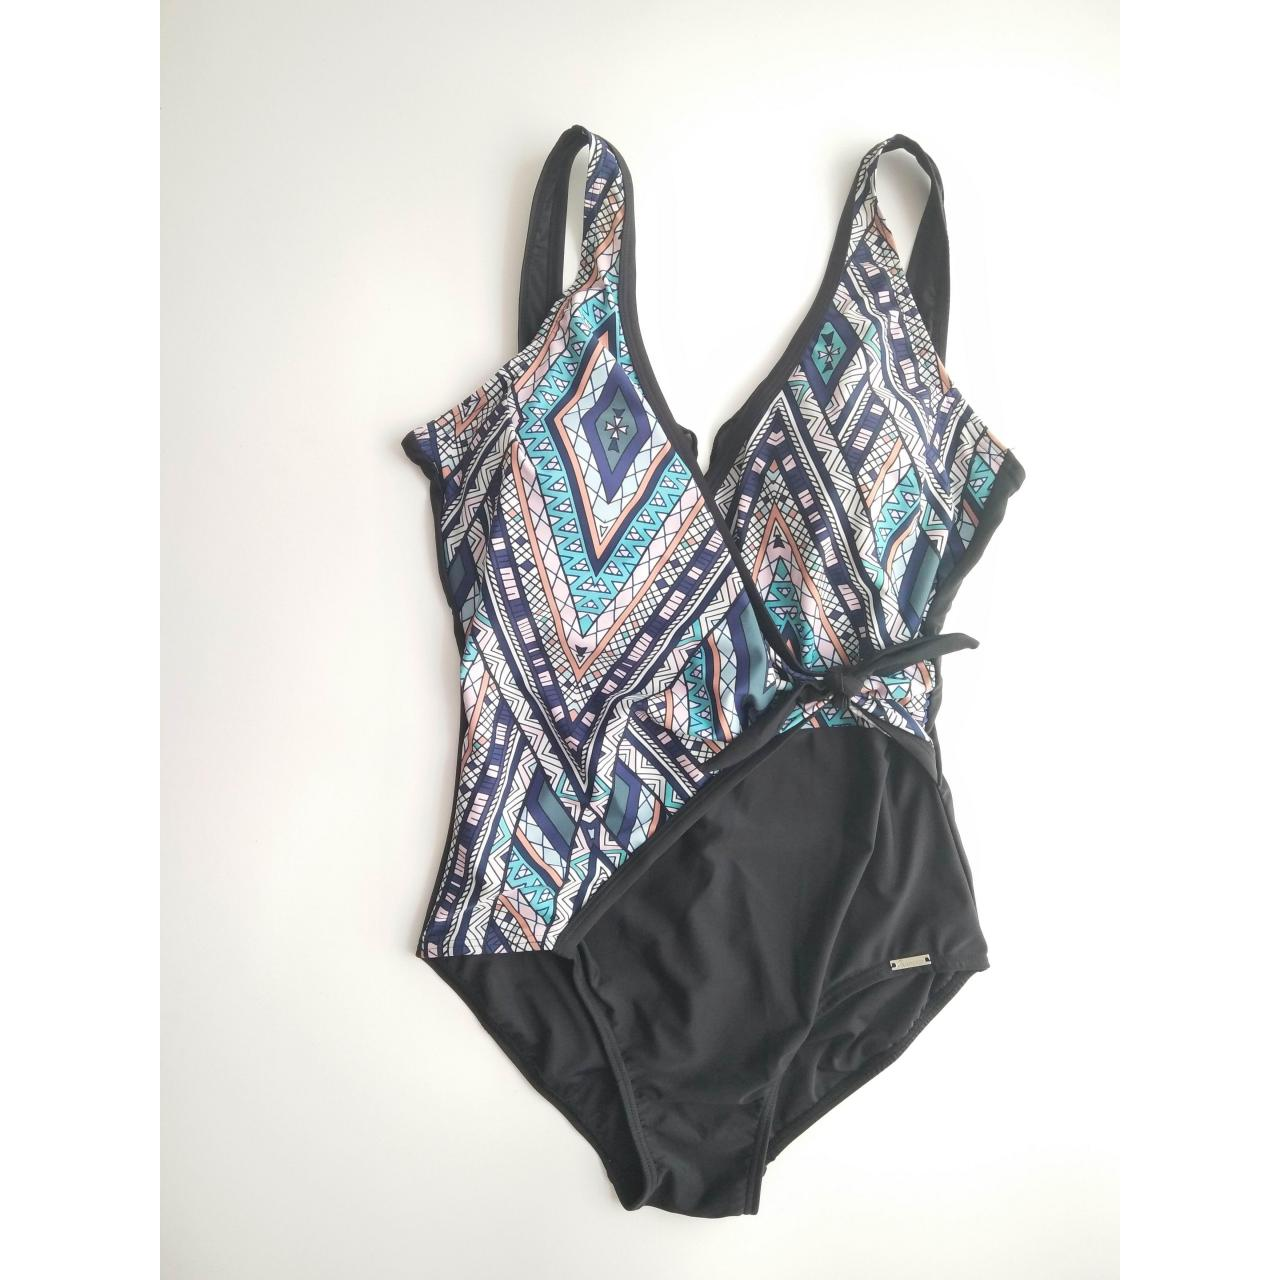 LADIES SWIMSUITS ladies front tie one-piece swimwear